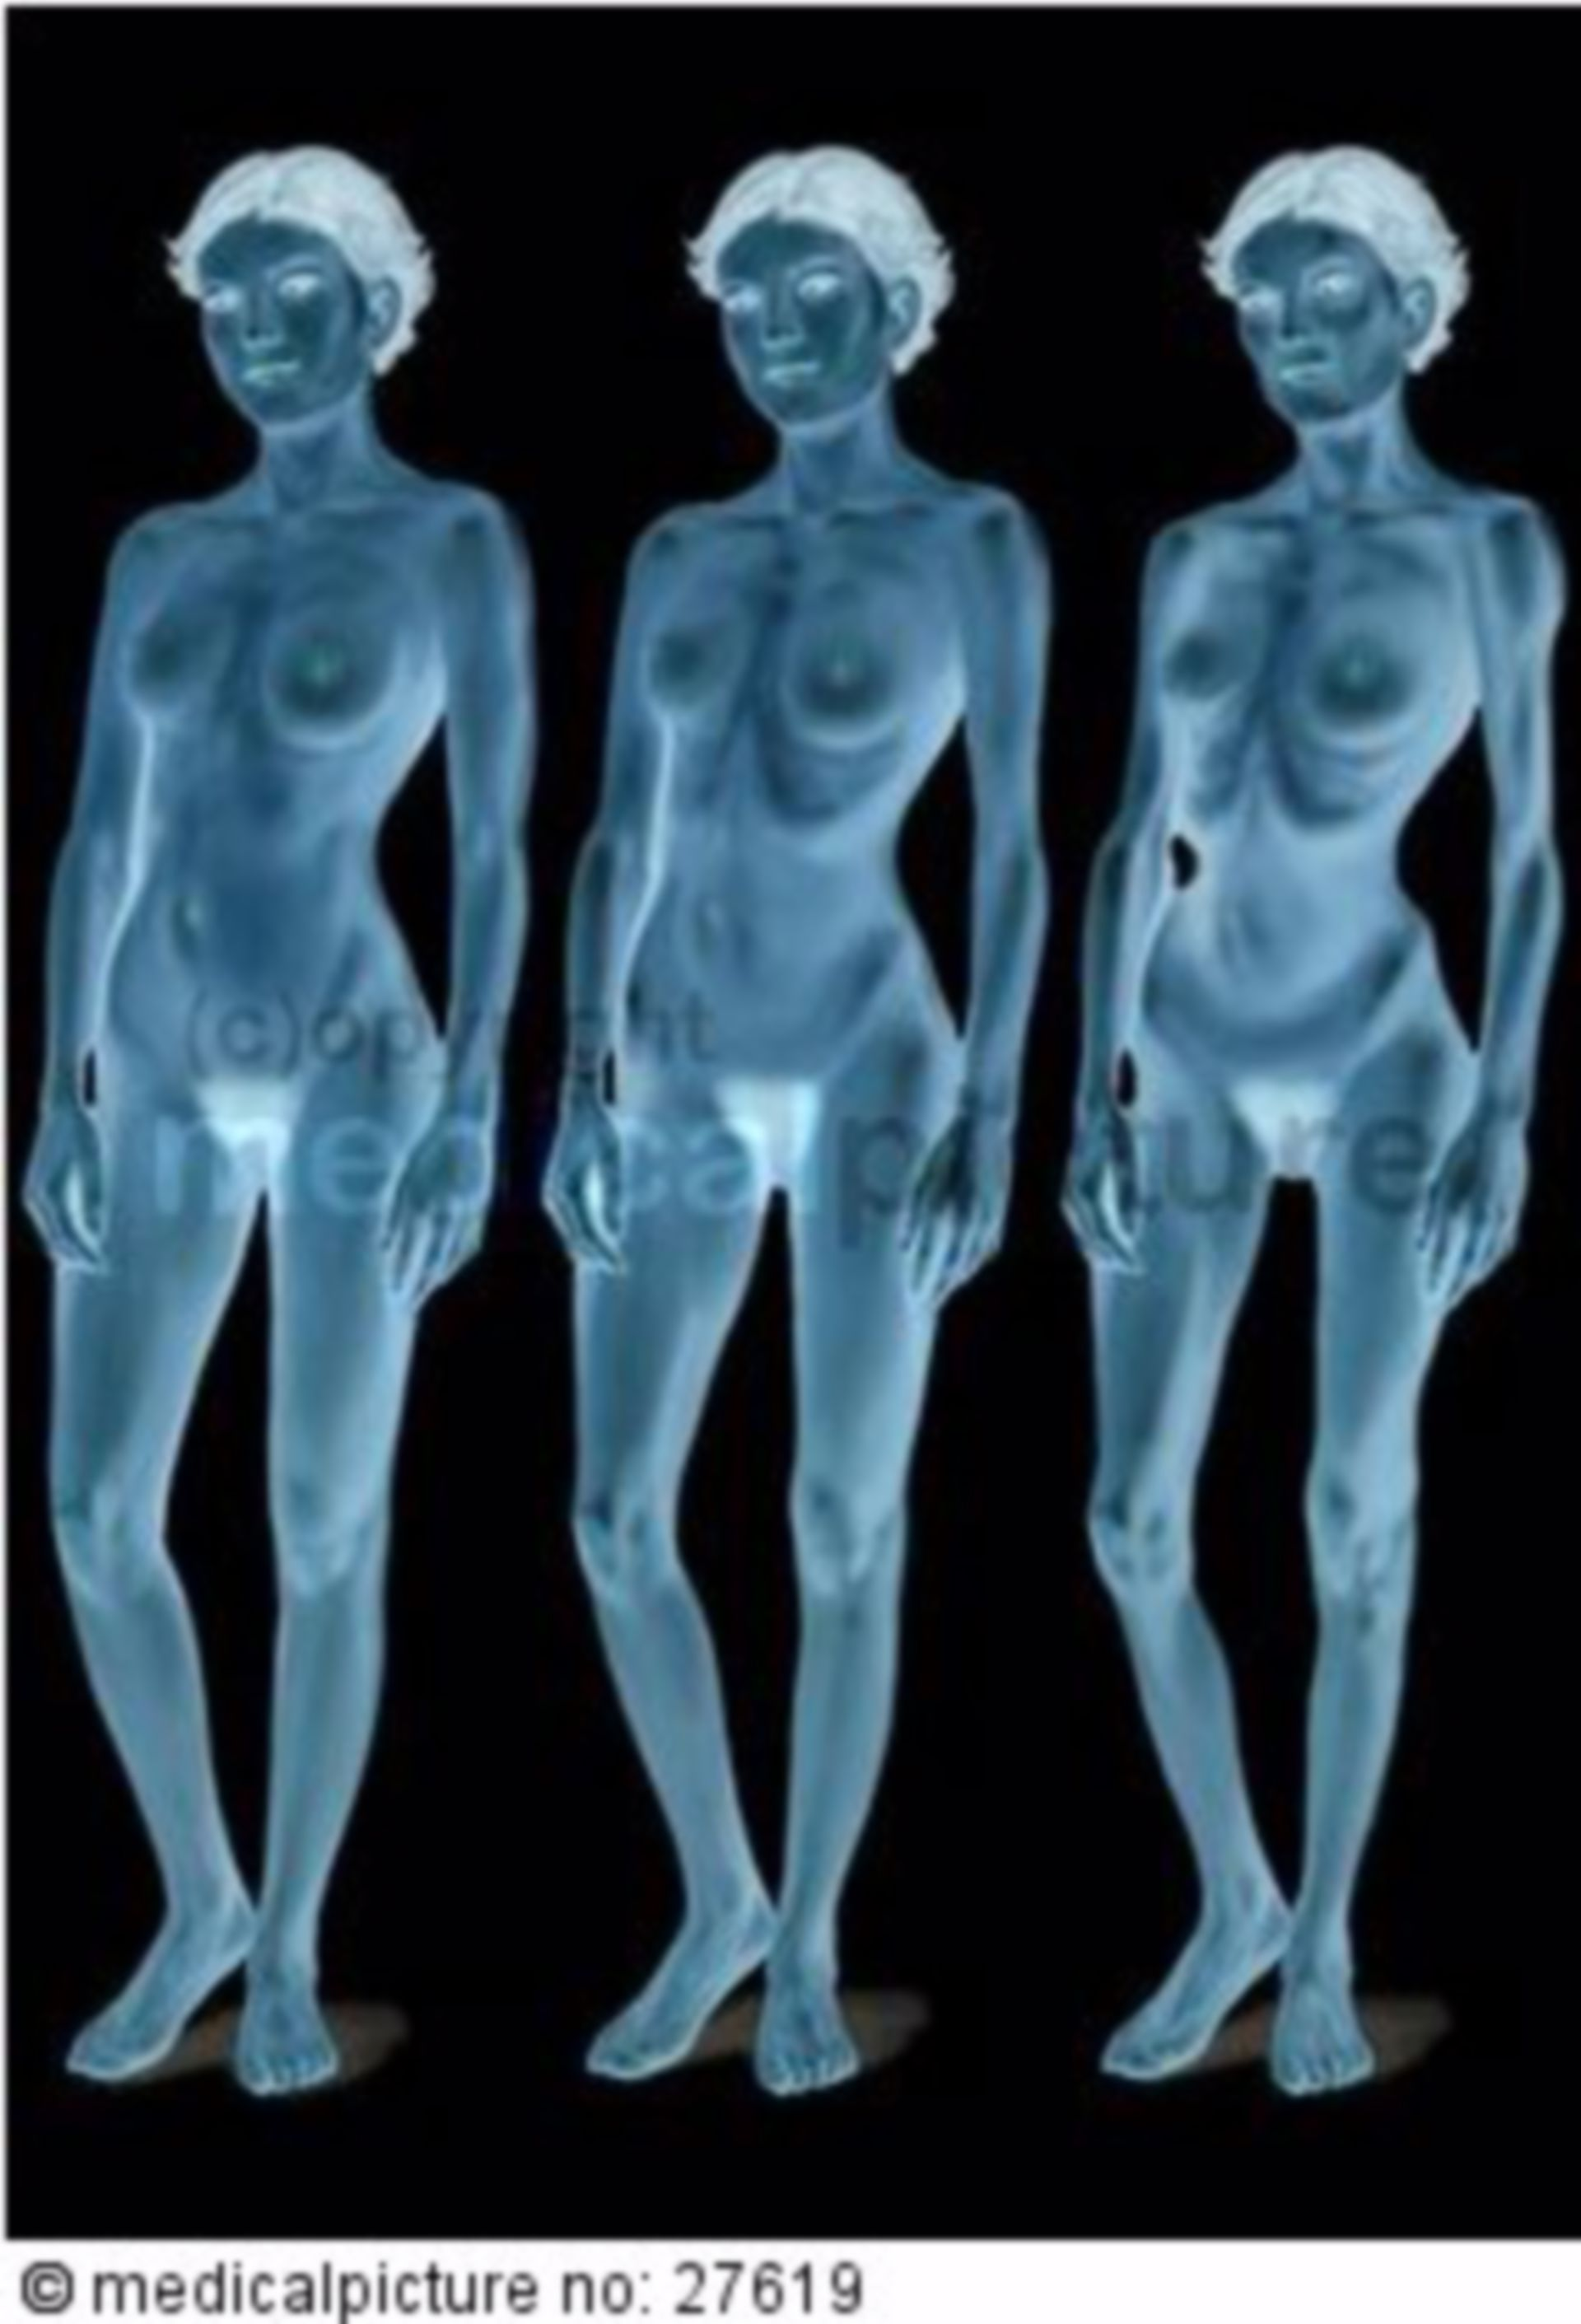 Anorexia, Development